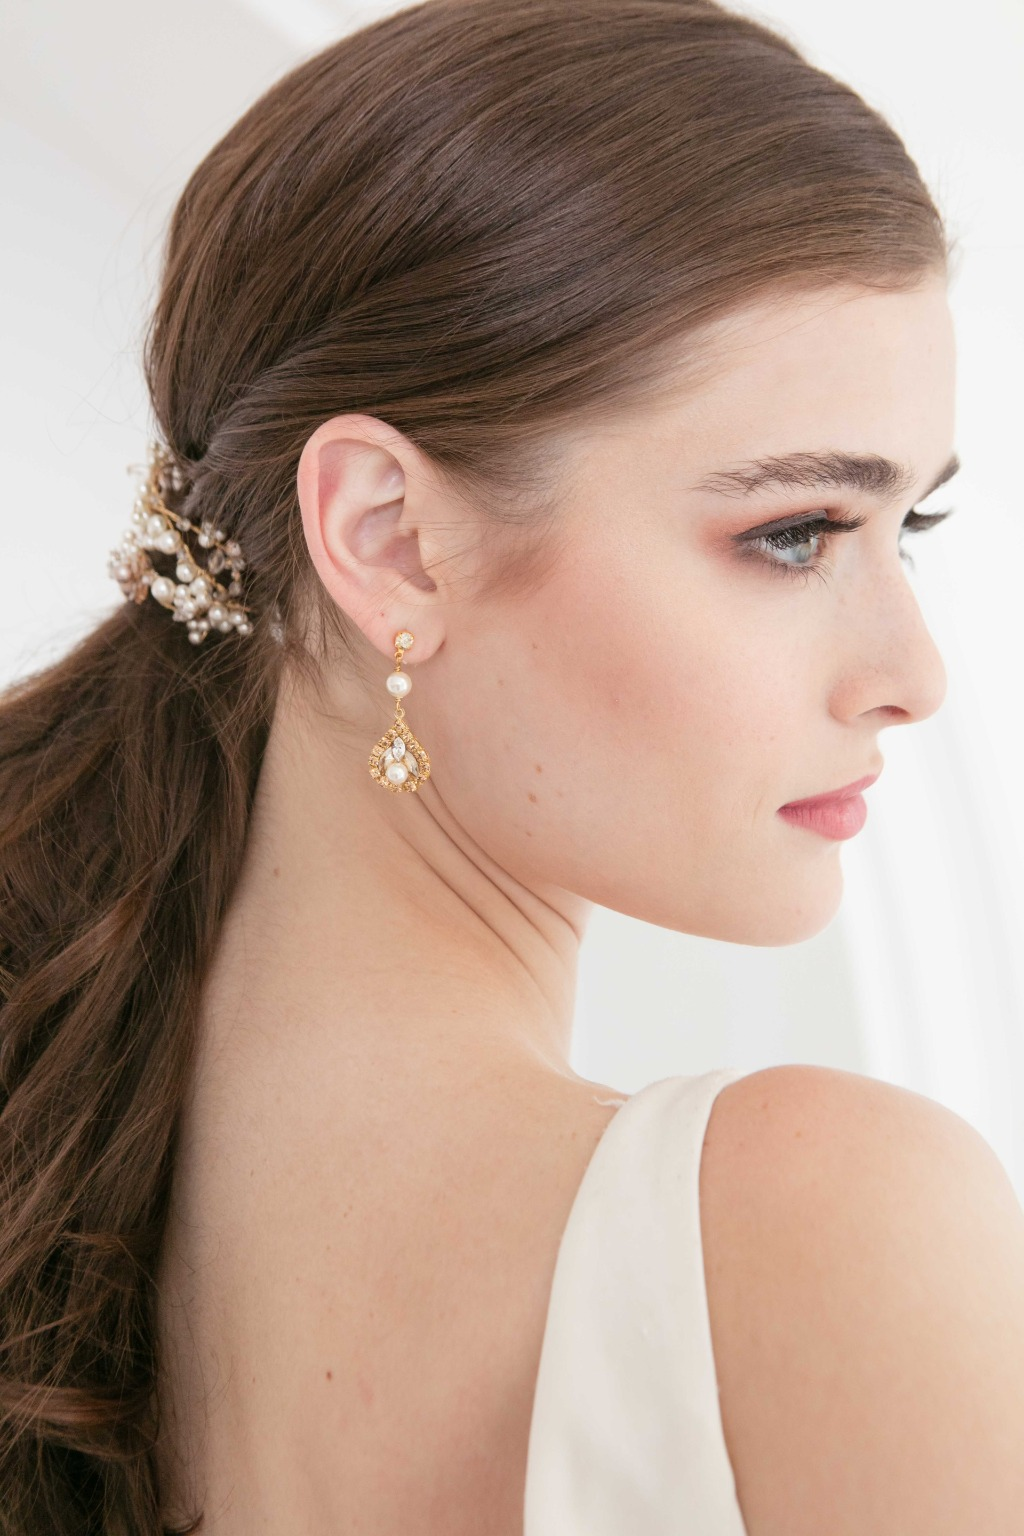 Pearl bridal jewelry and hair accessory from Laura Jayne 2020 collection. Check out more delicate wedding accessories and wedding inspiration